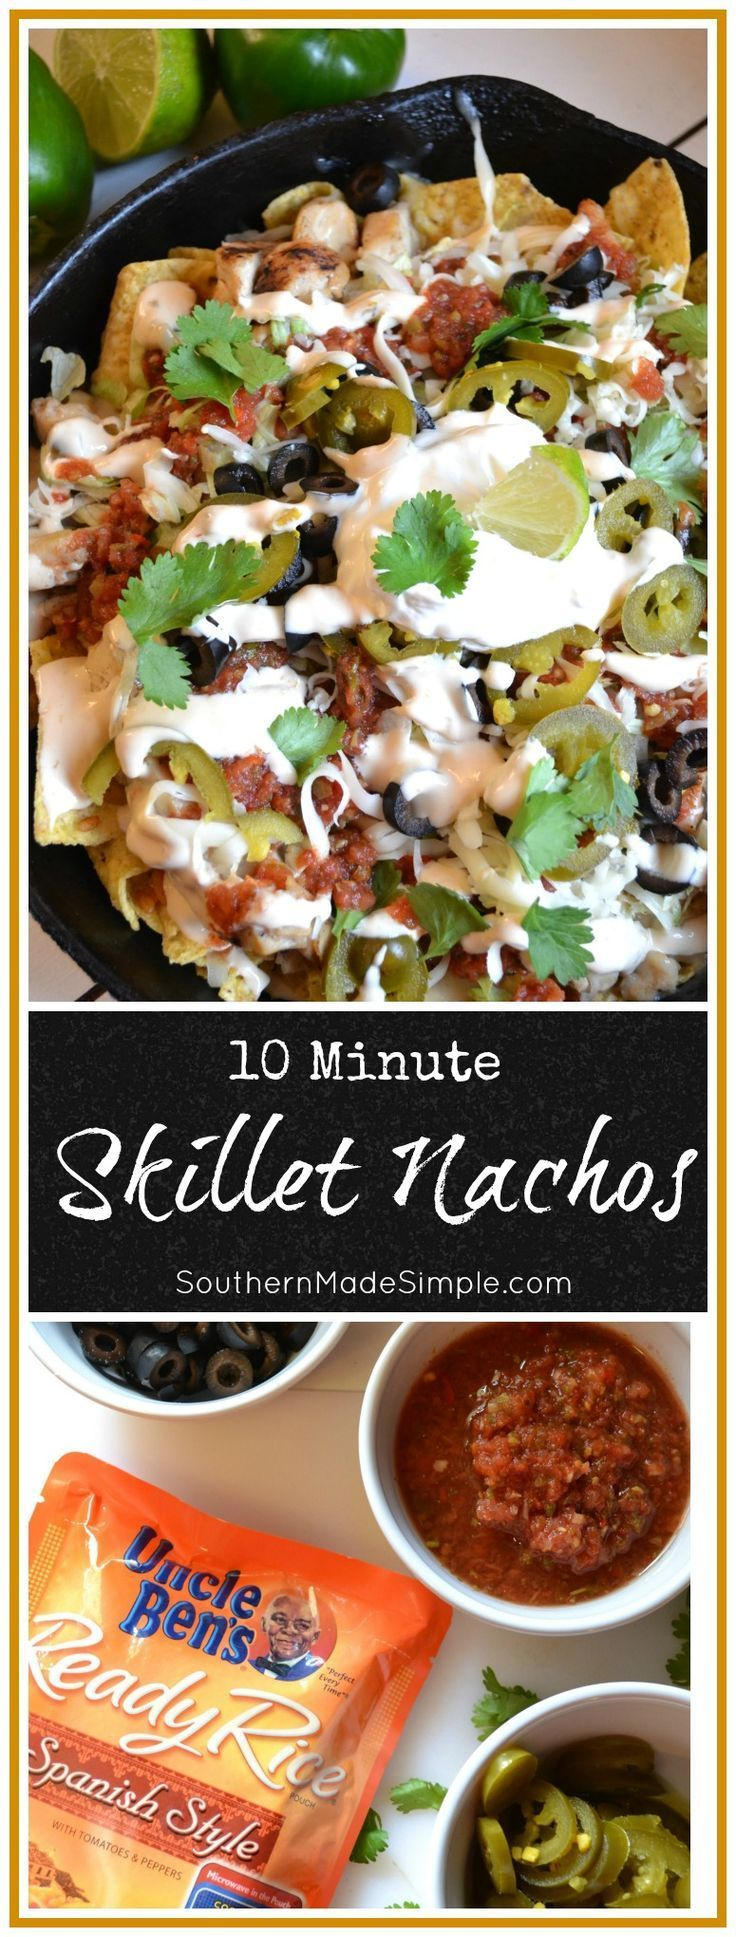 10 Minute Skillet Nachos are a perfect meal or snack on busy weekdays or even for game day! This meal is easy for kids to help prepare and can be personalized with all of your favorite nacho toppings! #BensBeginners #UncleBensPromo #ad /unclebensrice/